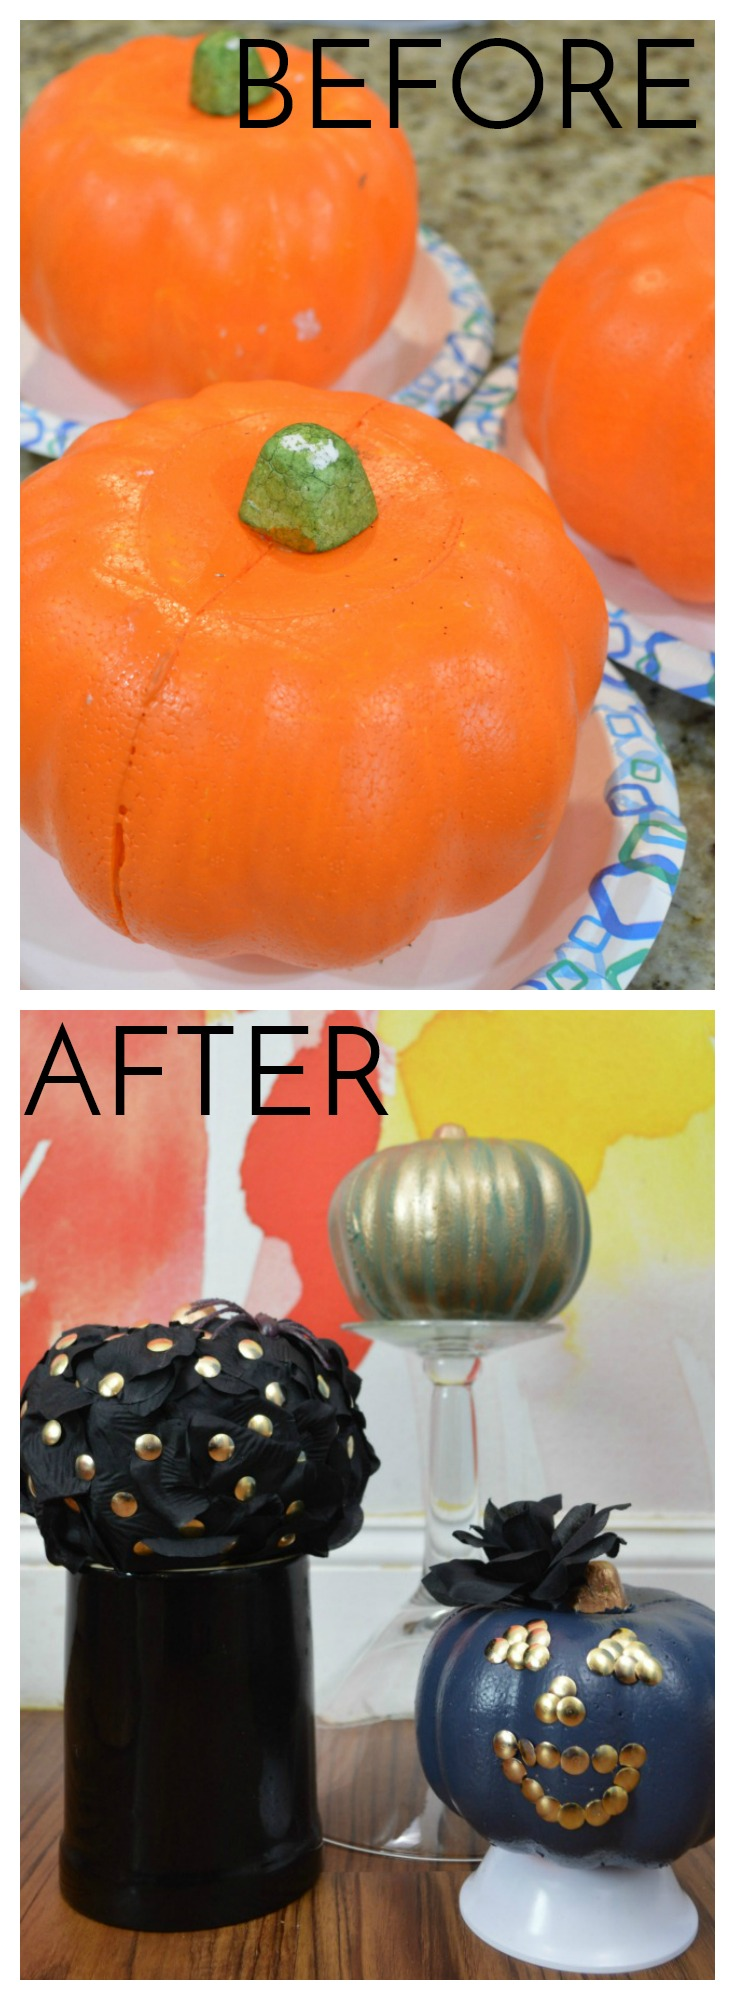 How to store pumpkins - Which One Is Your Favorite I Have To Say I Kind Of Love Angie But I Don T Want To Make Millie And Ann Jealous So They Are All My Favorite